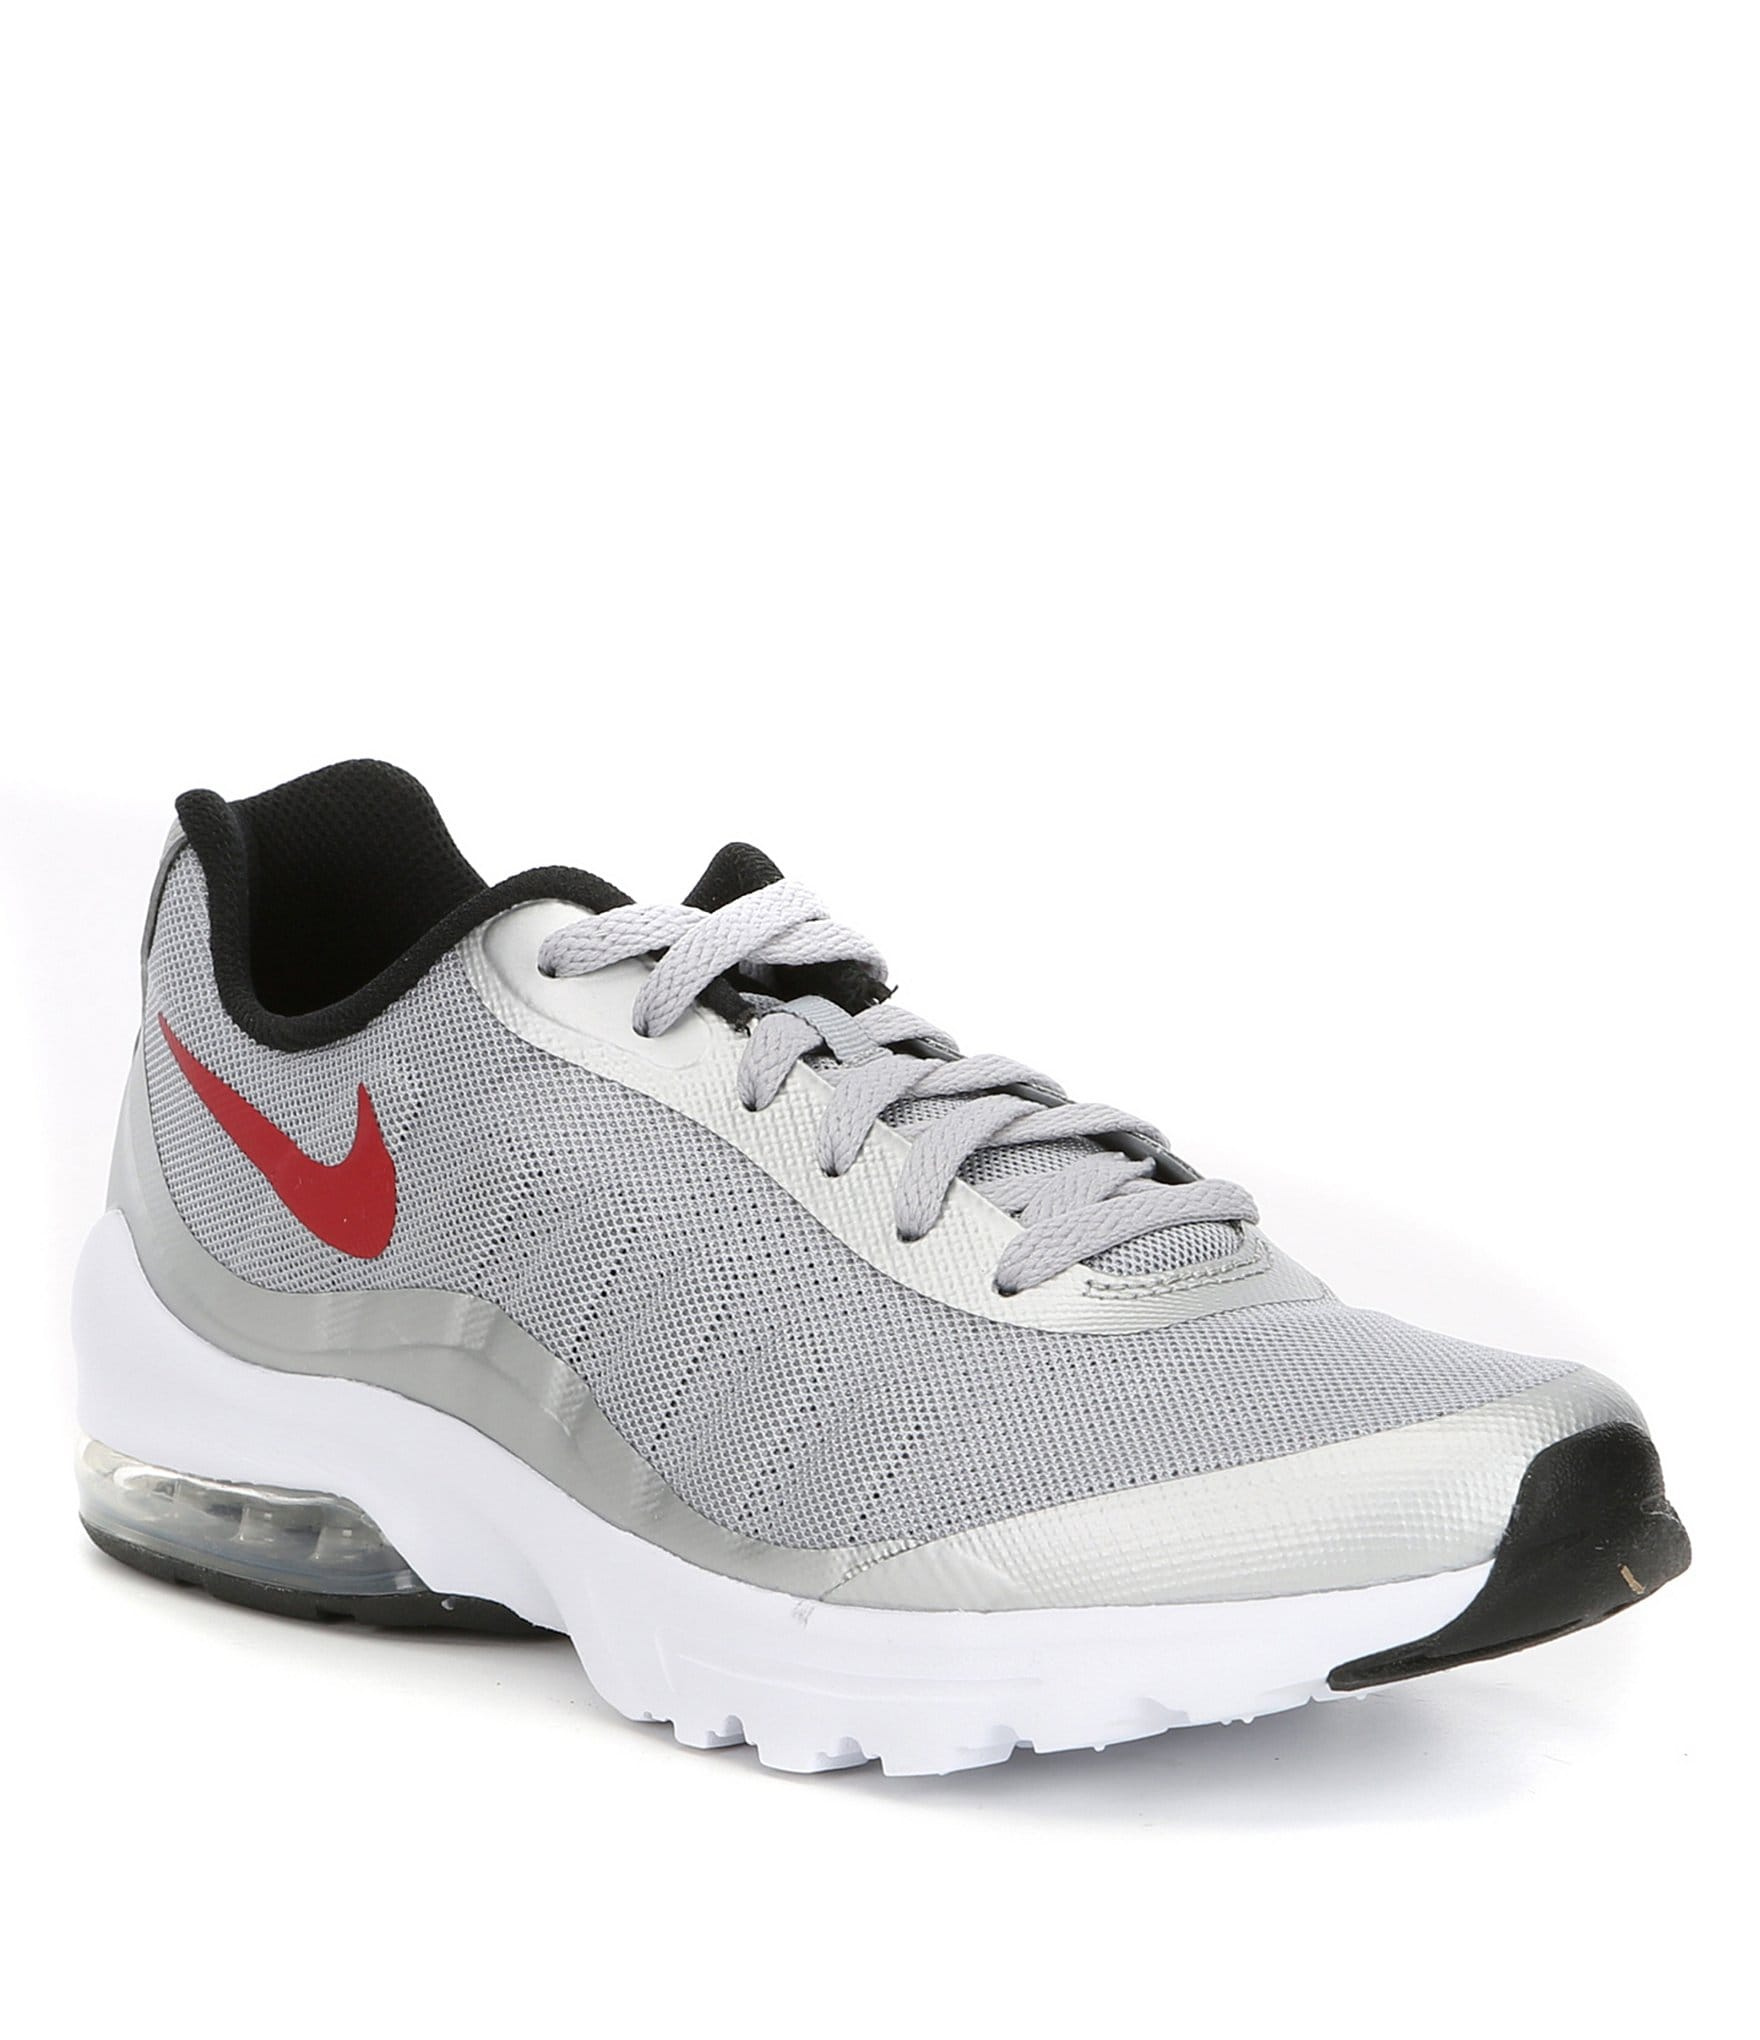 a7415bdde7 Nike Men´s Air Max Invigor Lifestyle Shoes Dillards ...